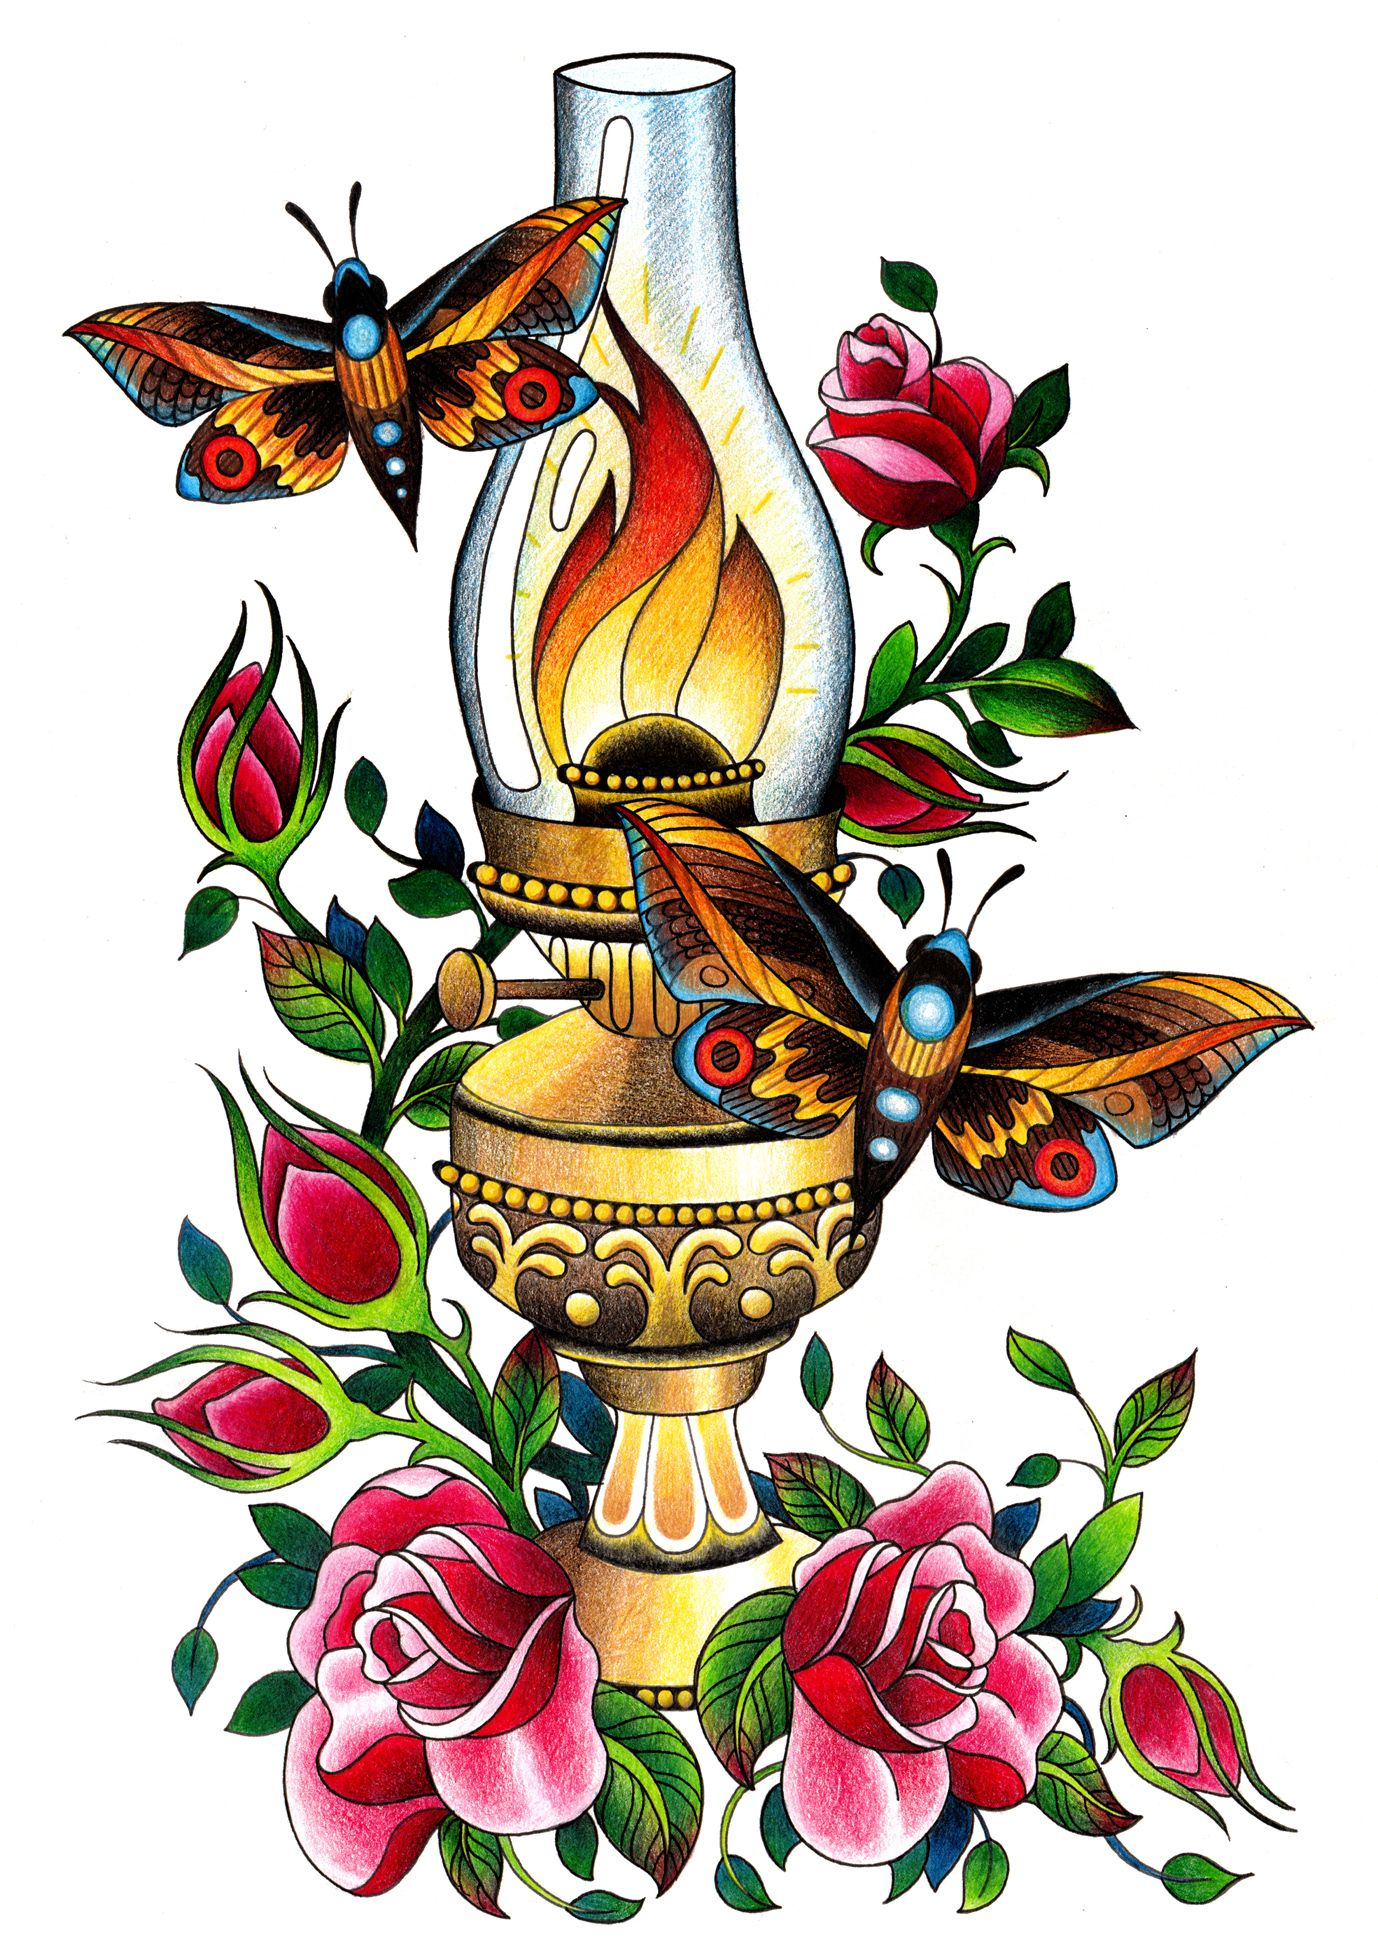 oil lamp tattoos   Pin Critique Thread Page 129 Big Tattoo Planet Community Forum on ...